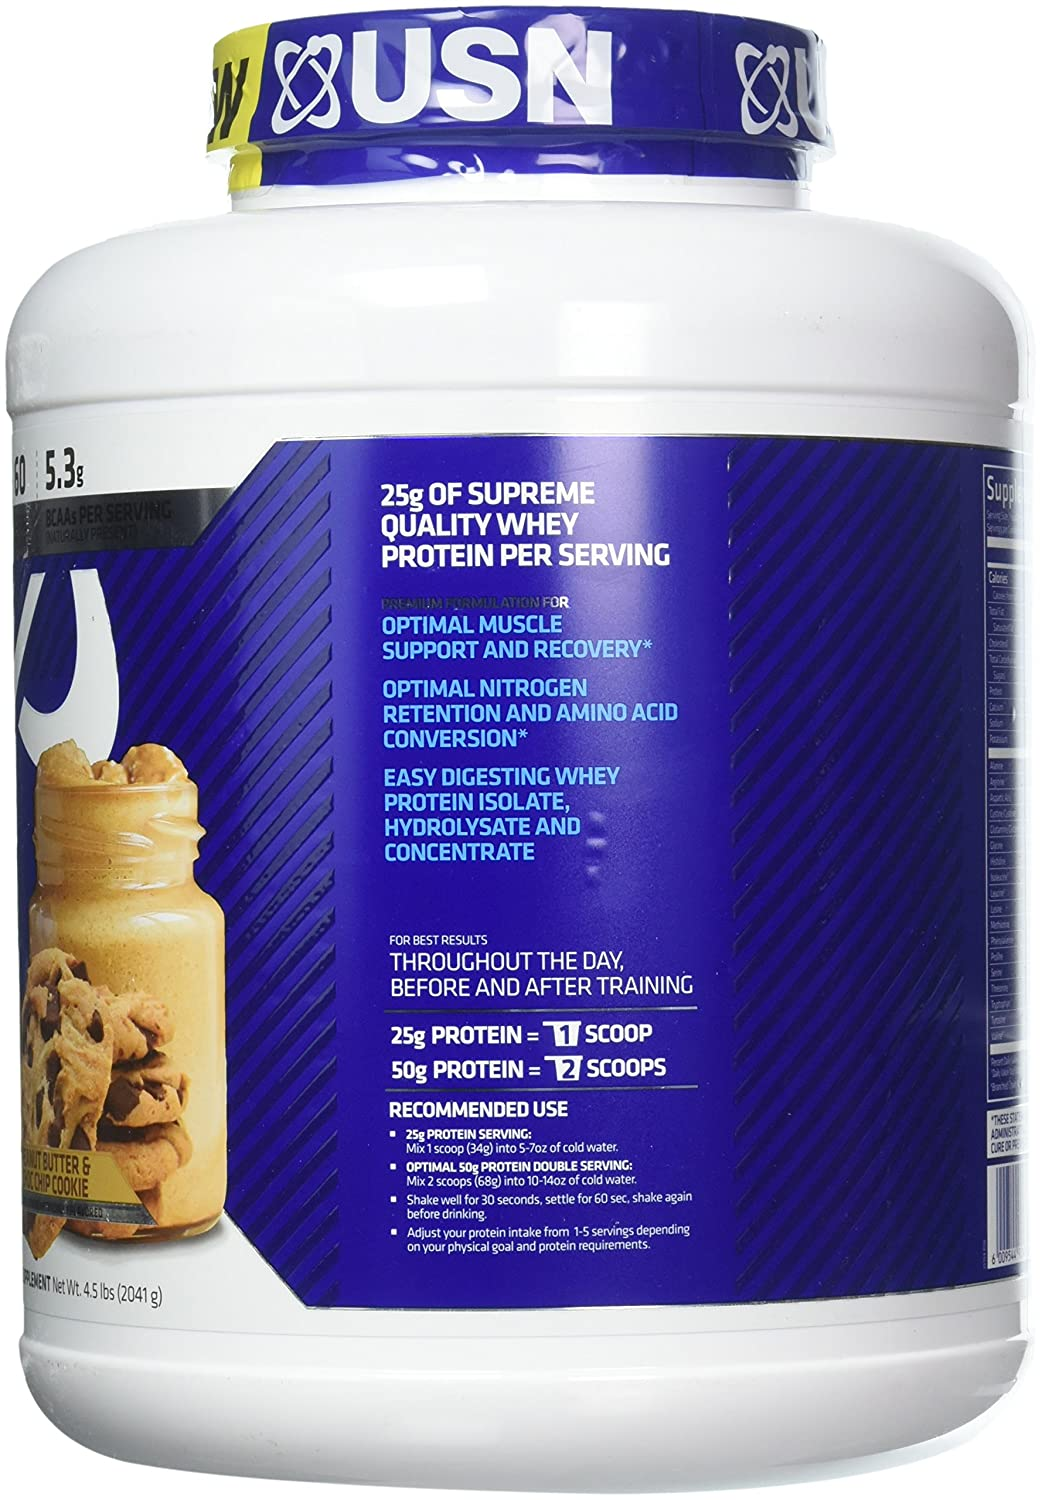 USN Supplements Bluelab 100 Percent Whey, Peanut Butter Chocolate Chip, 4.5 Pound